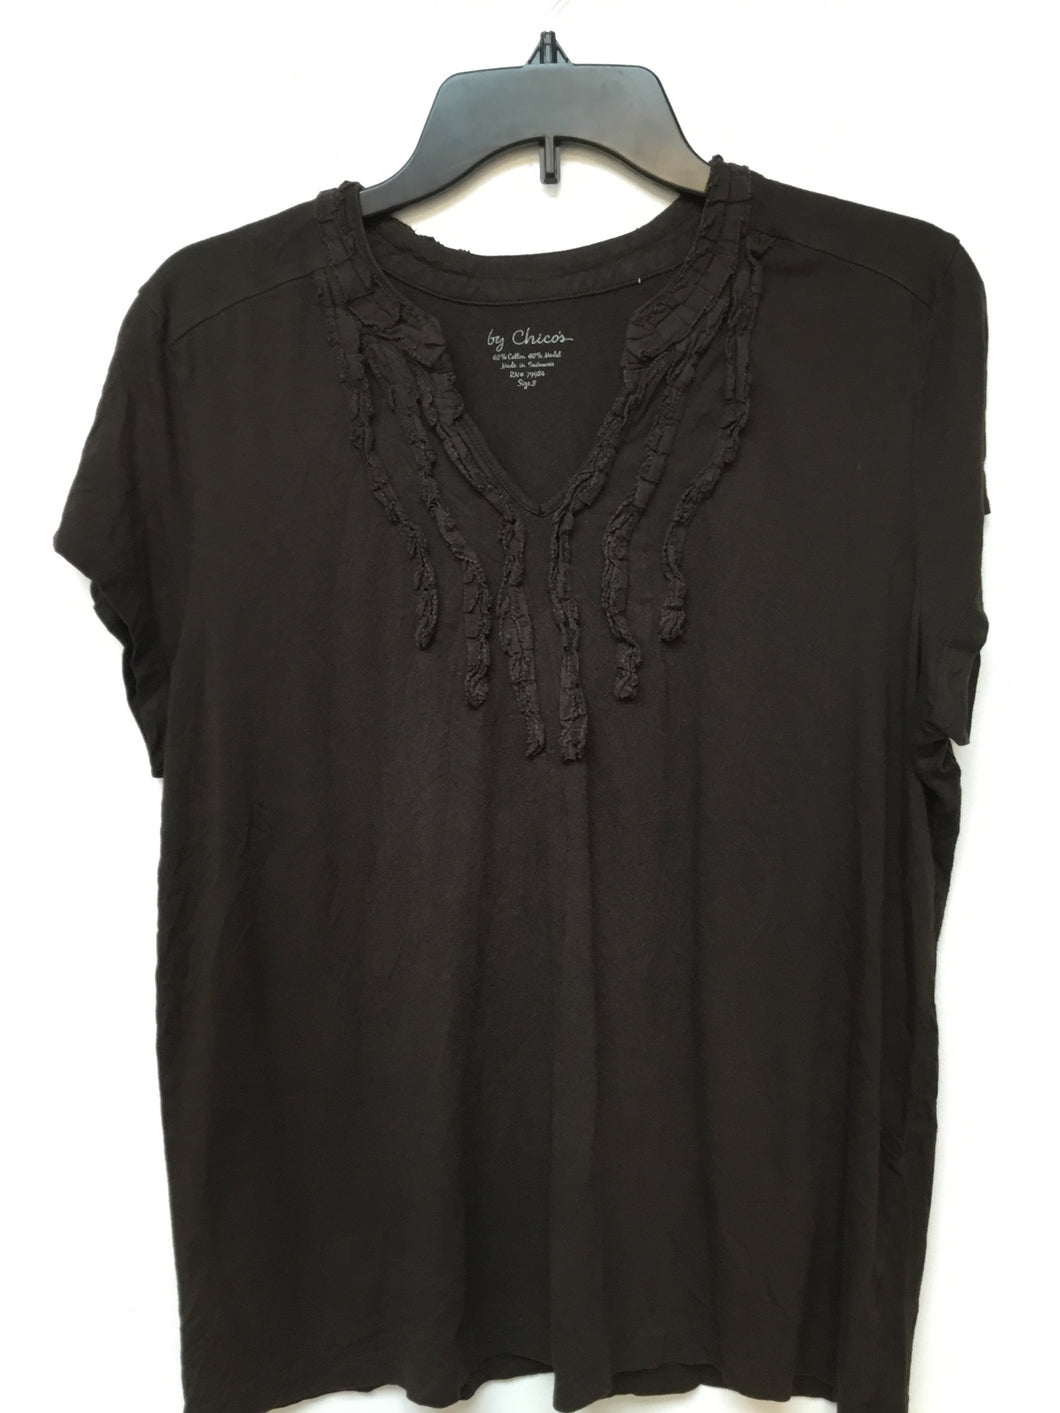 By Chico's brown top size 3X